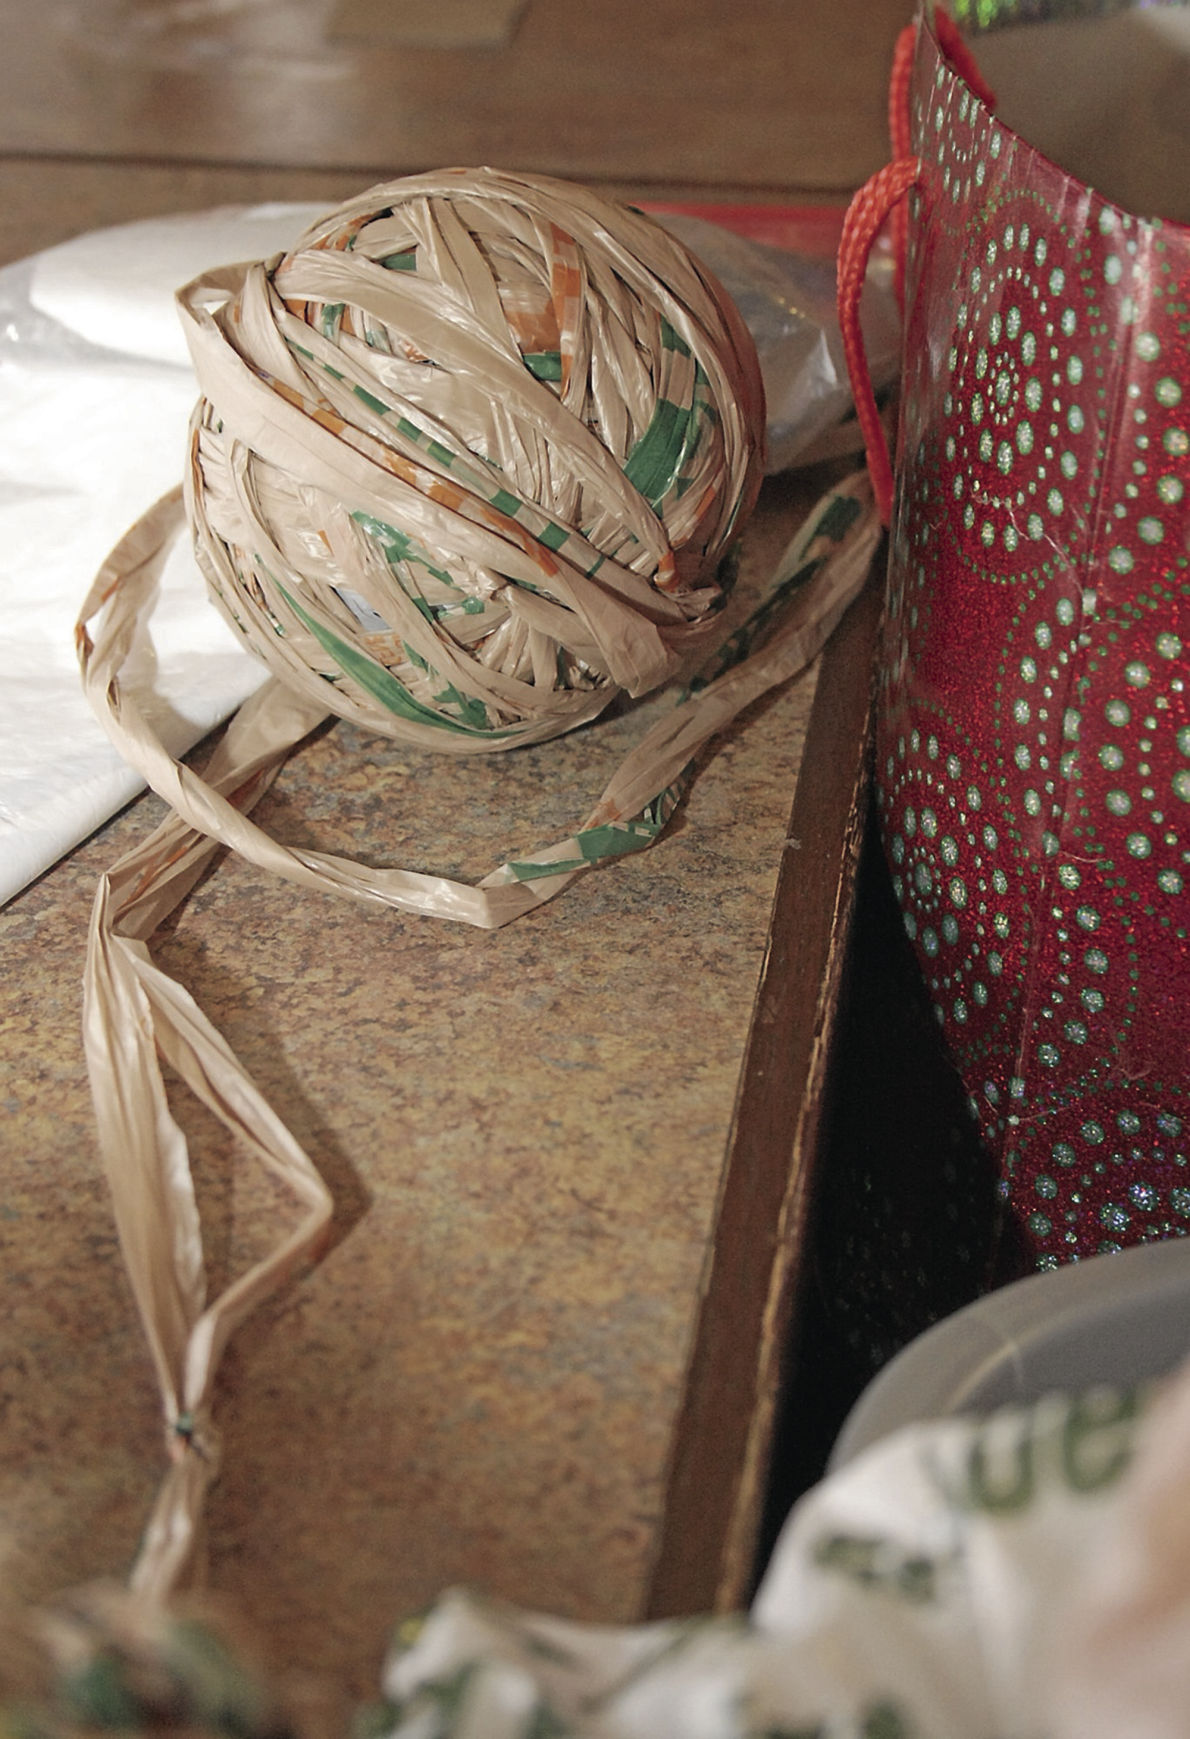 Group Crochets Recycled Plastic Bags Into Mats Lifestyle